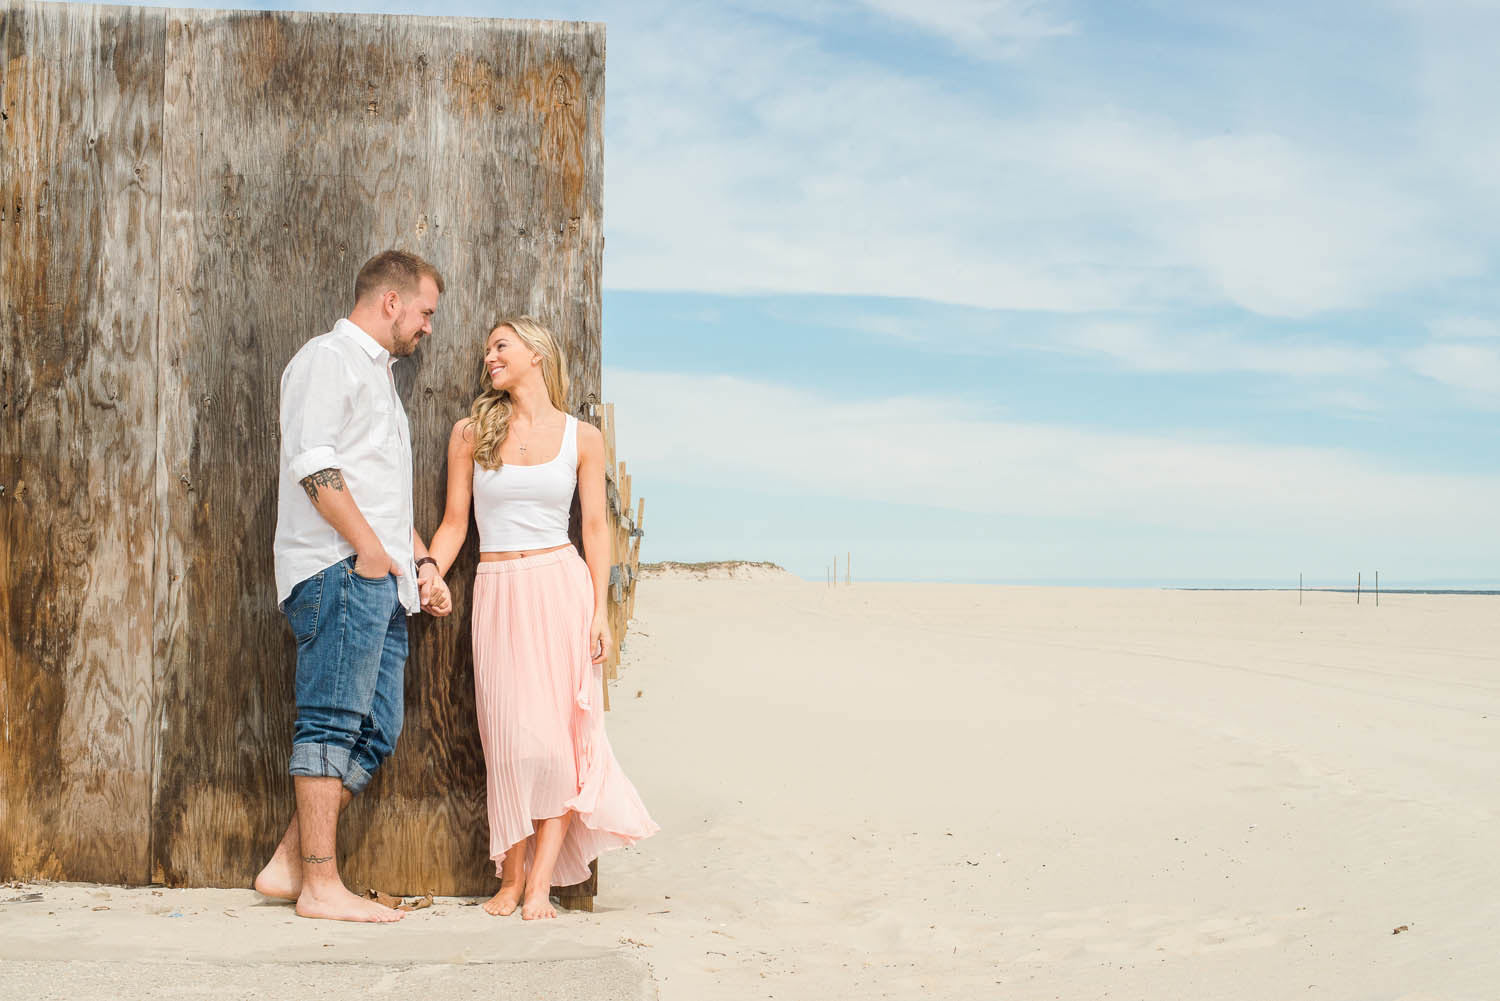 Engagement photo sessions are more than fun casual photos; they are one of the first mile markers on your wedding planning journey. Is a fun, low-stress photo session that provides the opportunity for the photographer, bride, and groom to work together prior to the wedding day. Atlantic Beach, NY